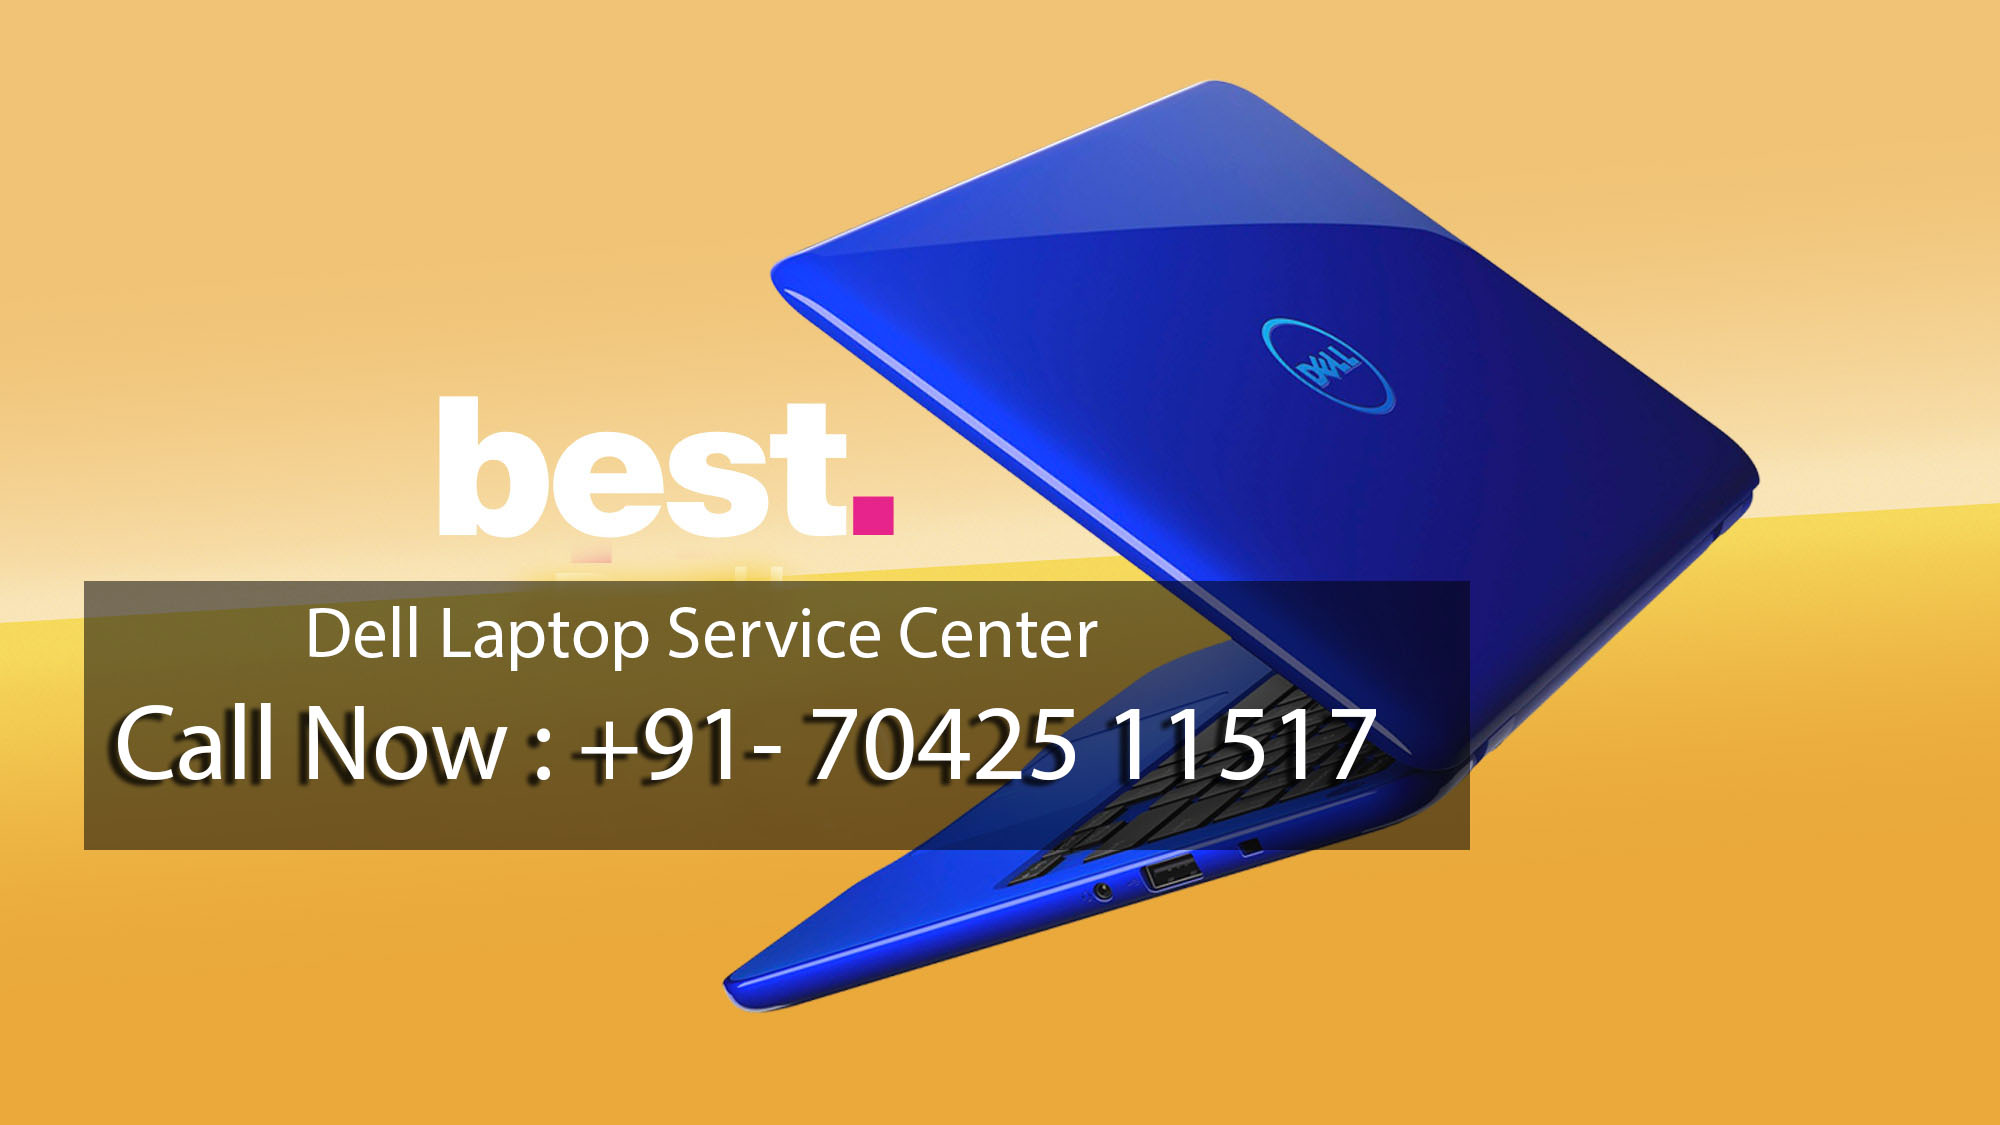 Dell Service Center in Ramesh Nagar